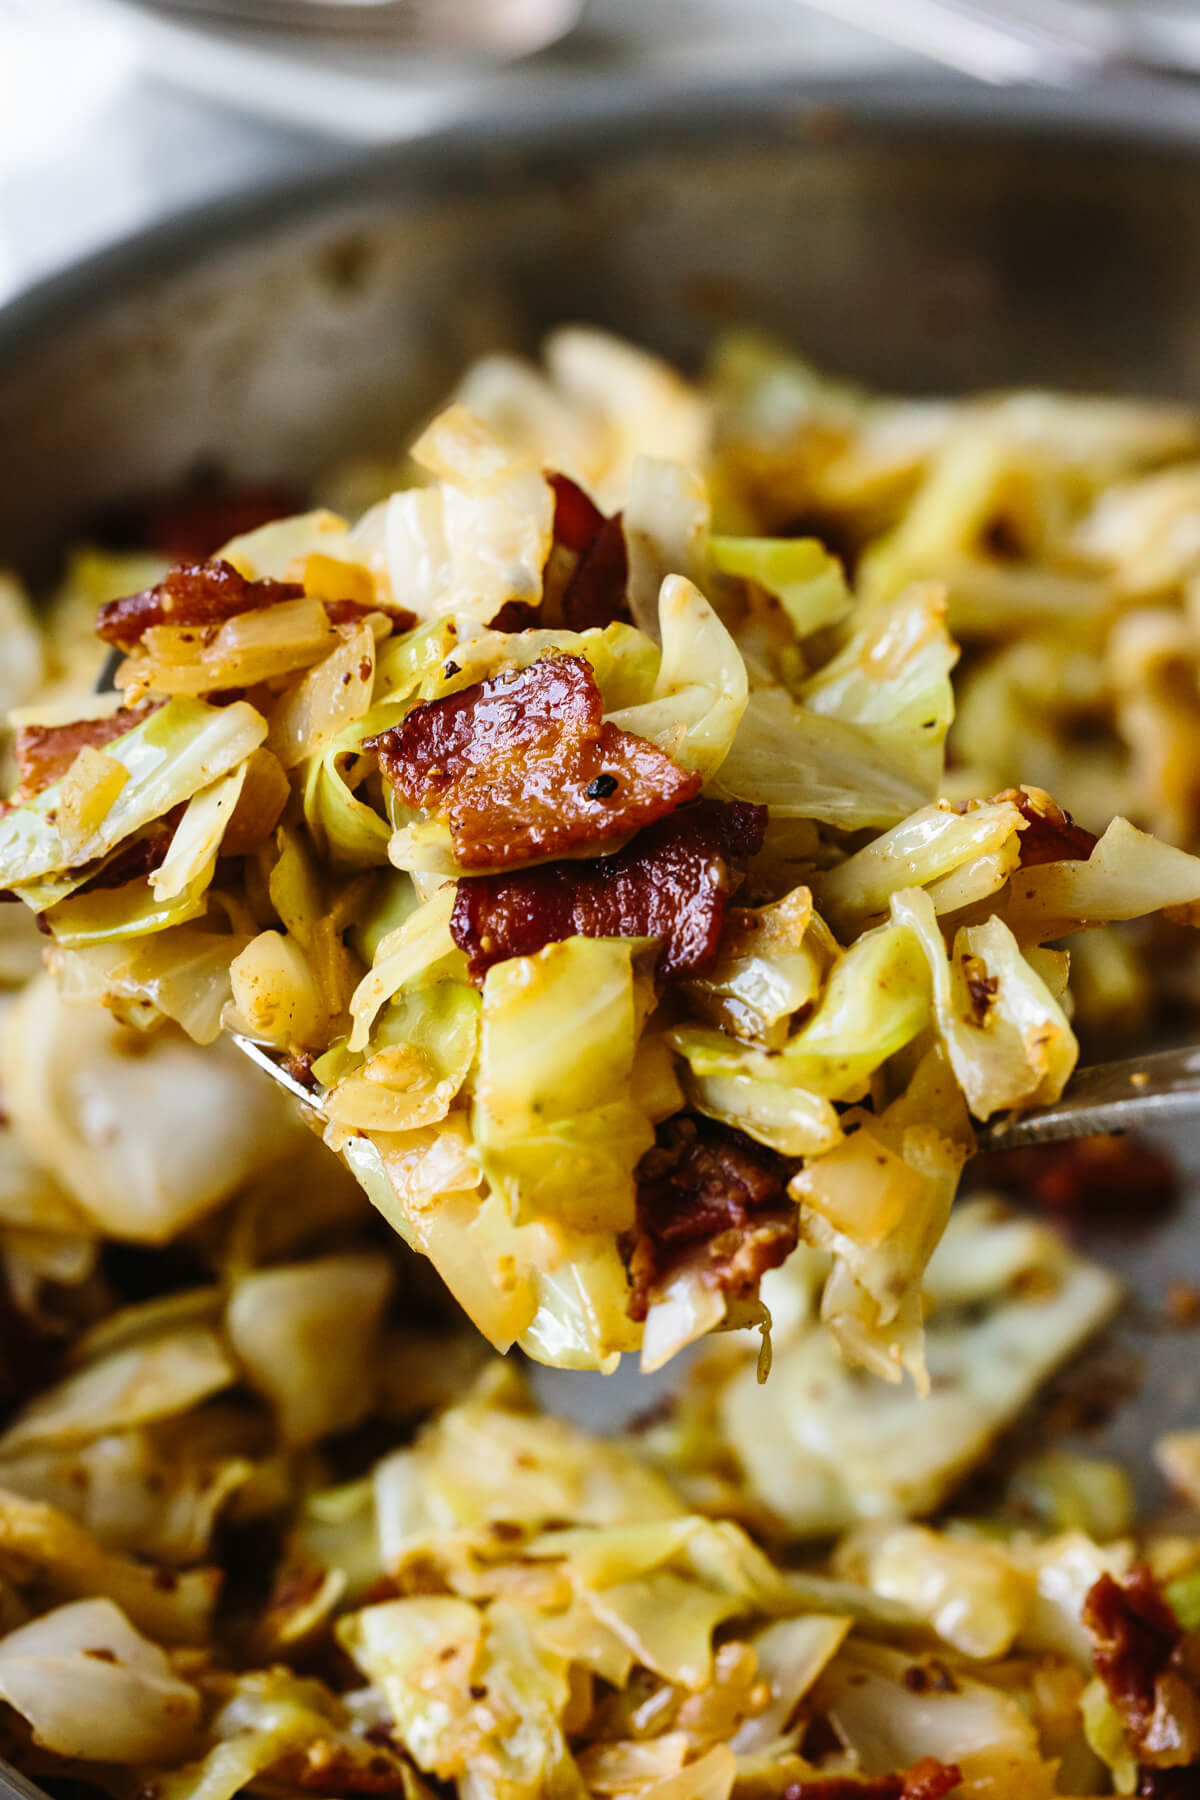 A closeup of a spoonful of fried cabbage.